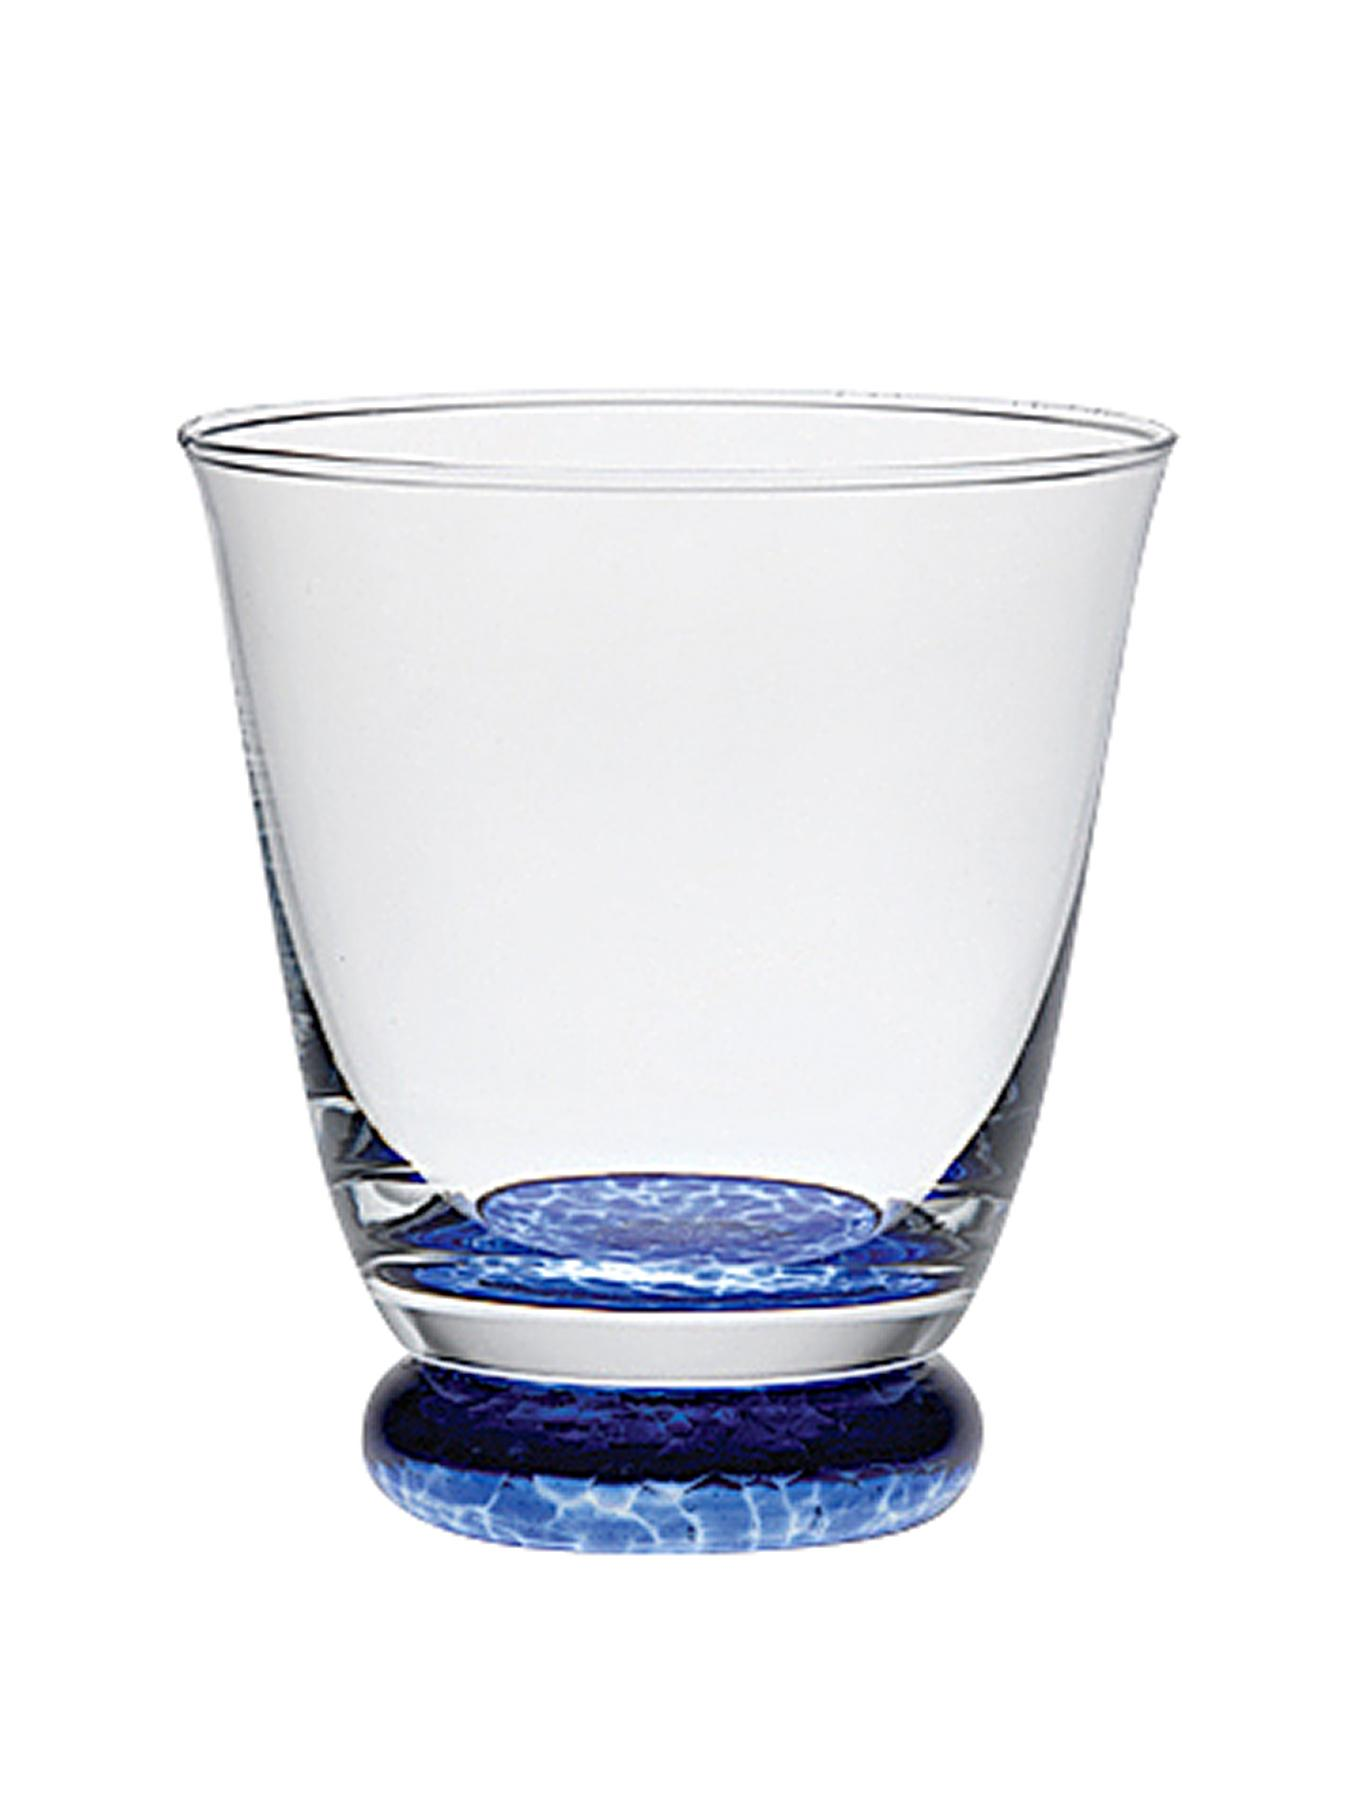 Denby Imperial Blue Small Tumbler (2 pack)